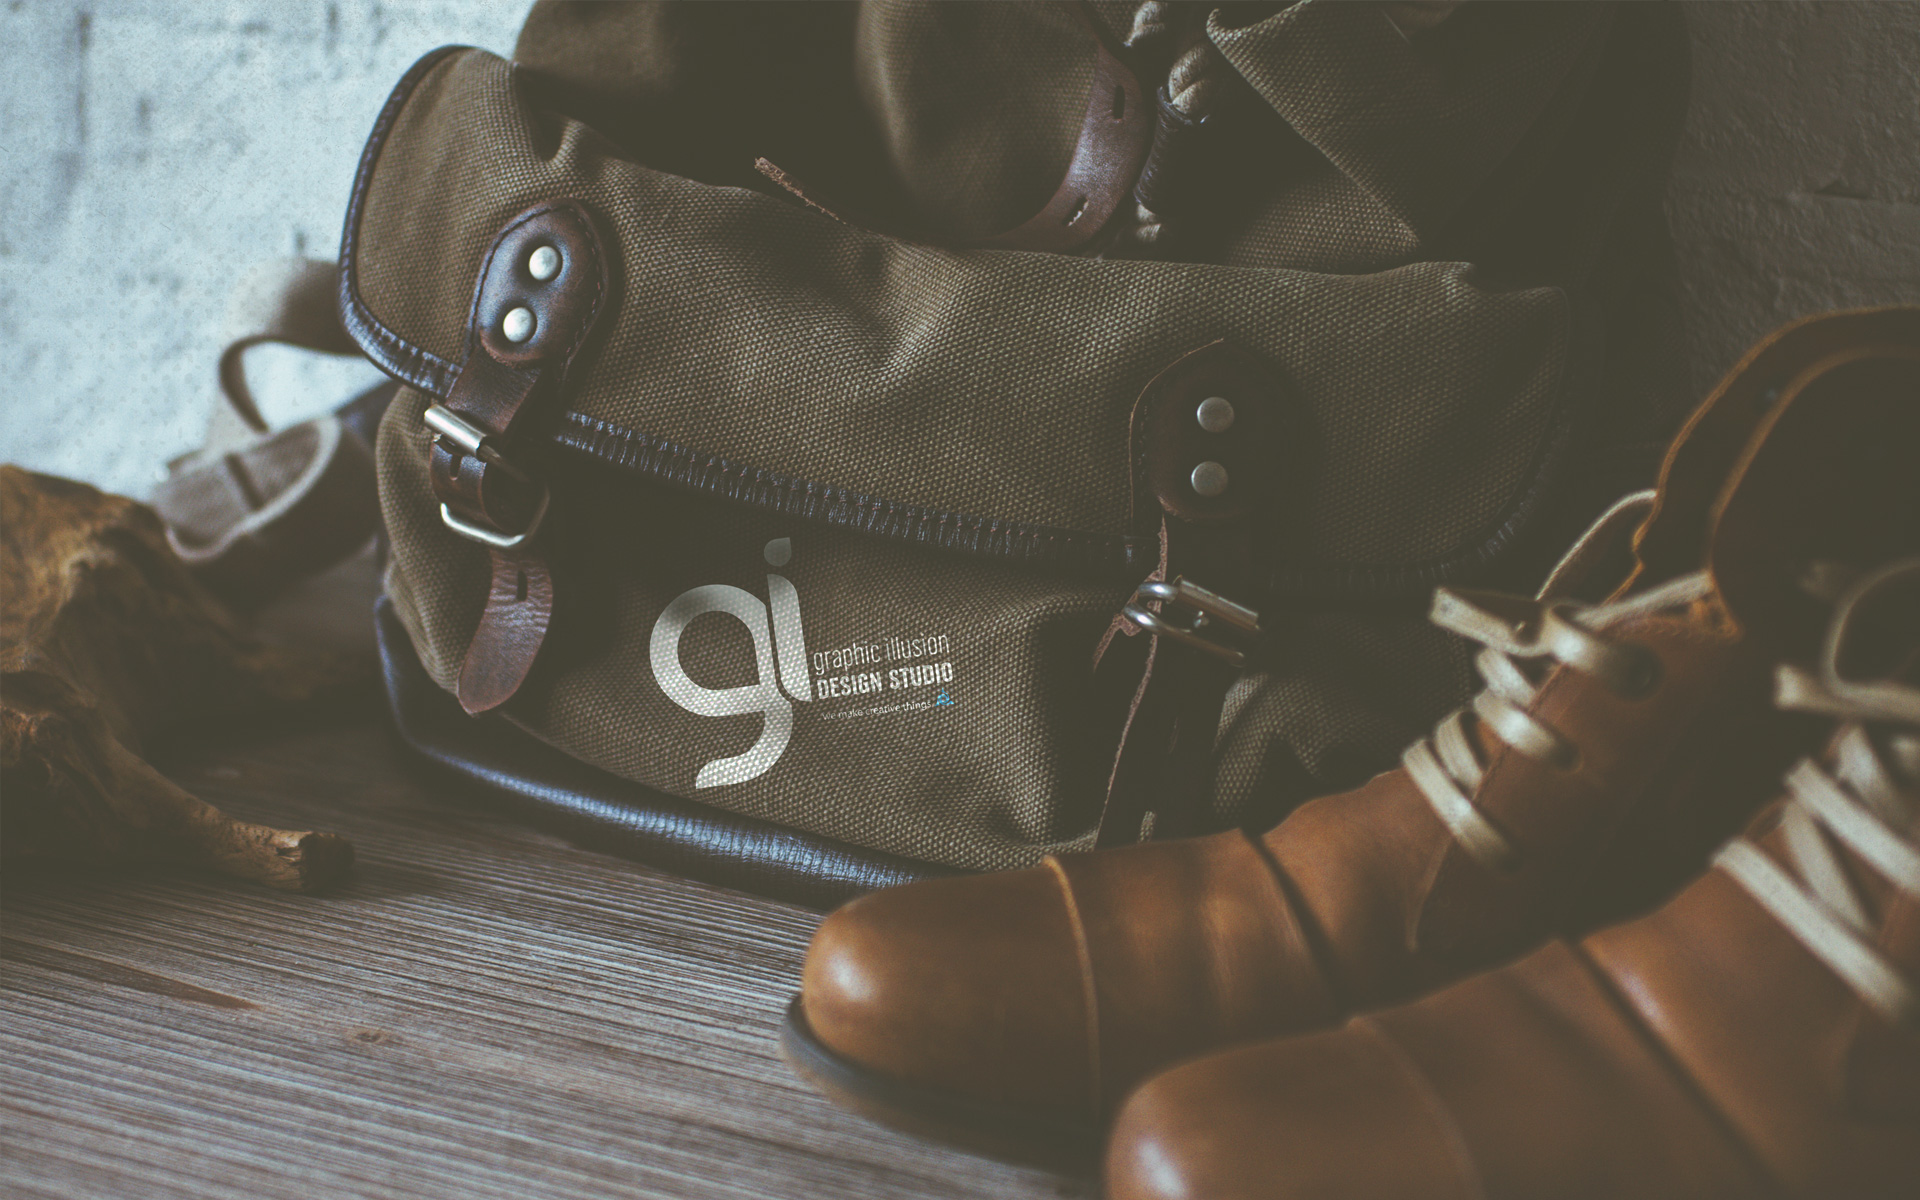 graphicillusion_backpack